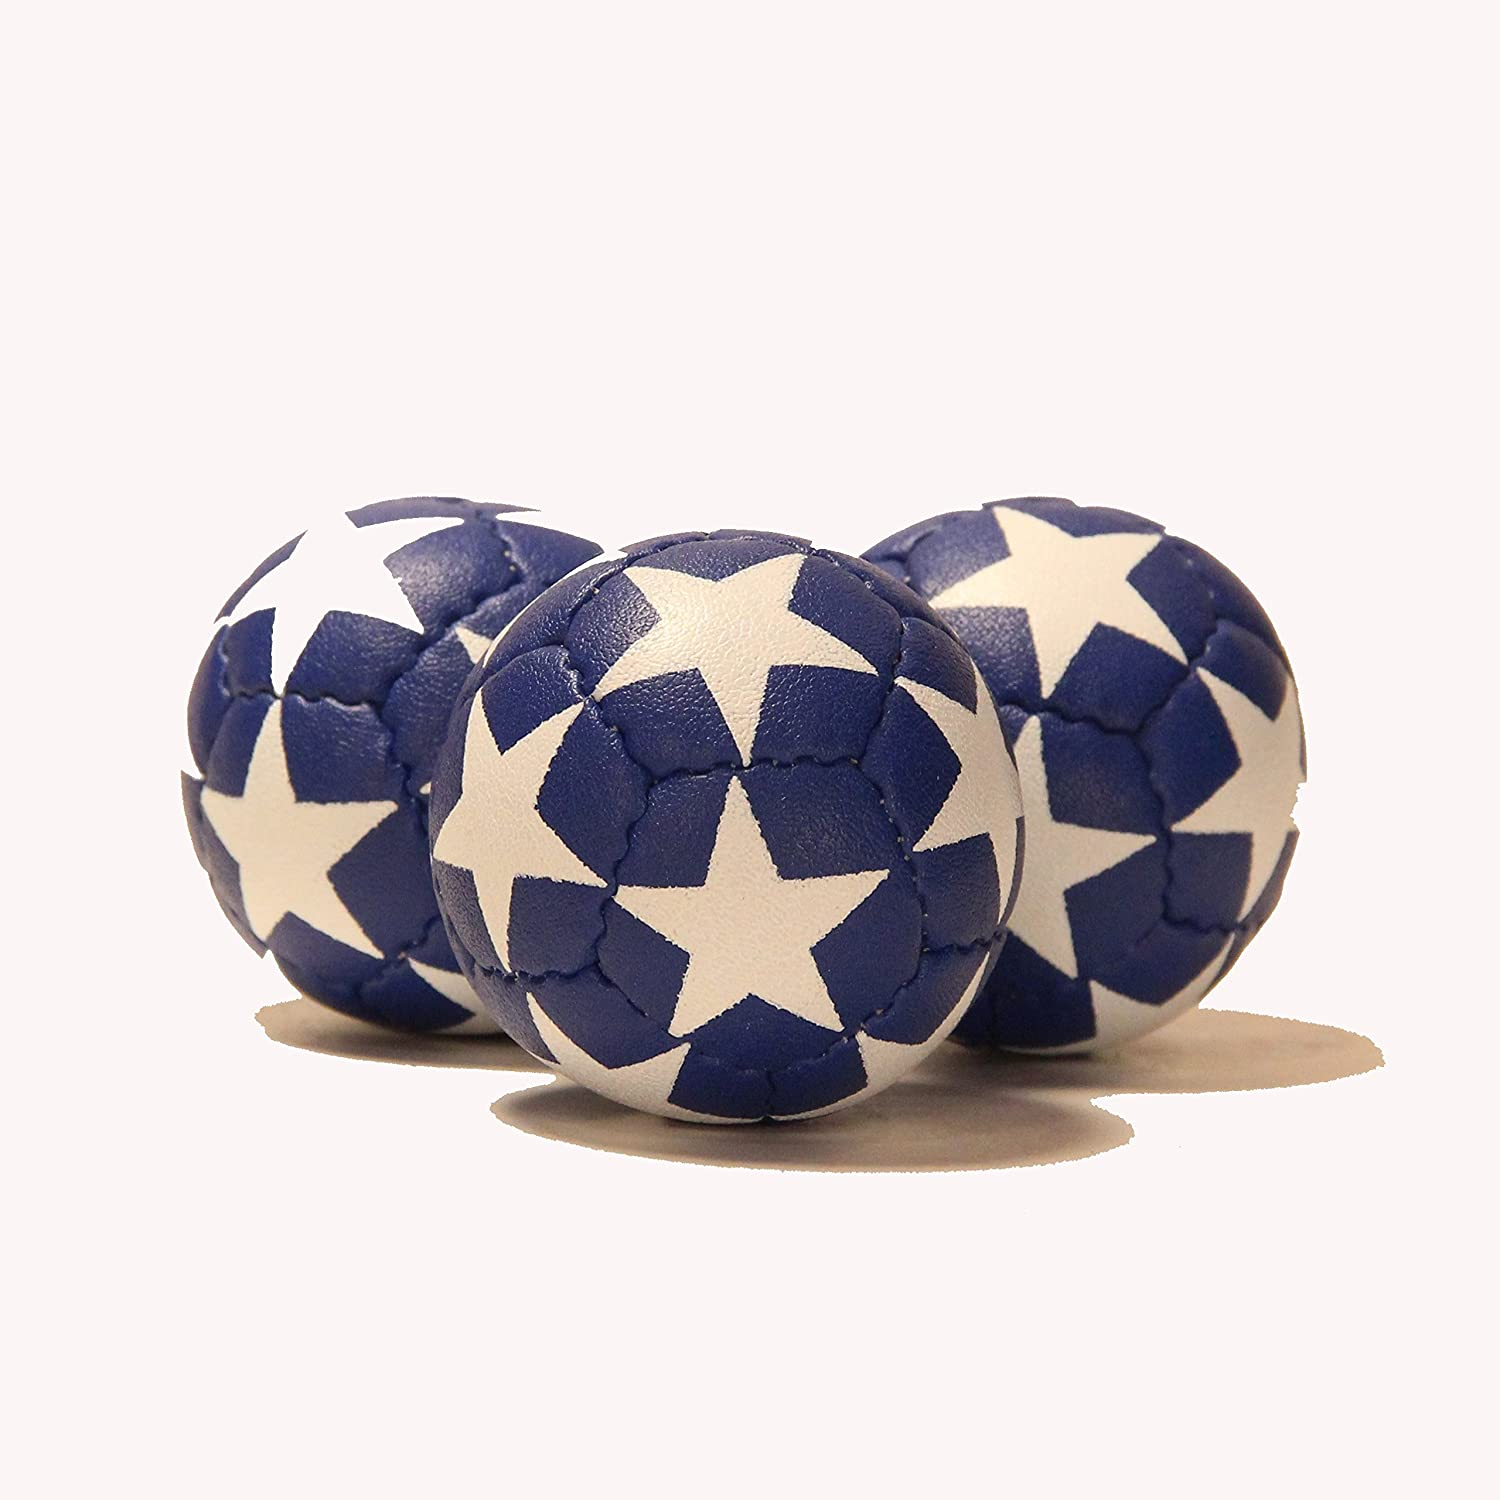 Zeekio Satellite Juggling Ball Set of 3 Millet filled 67mm 125g Great Grip 12 Panel 3 Ball Blue with White Stars